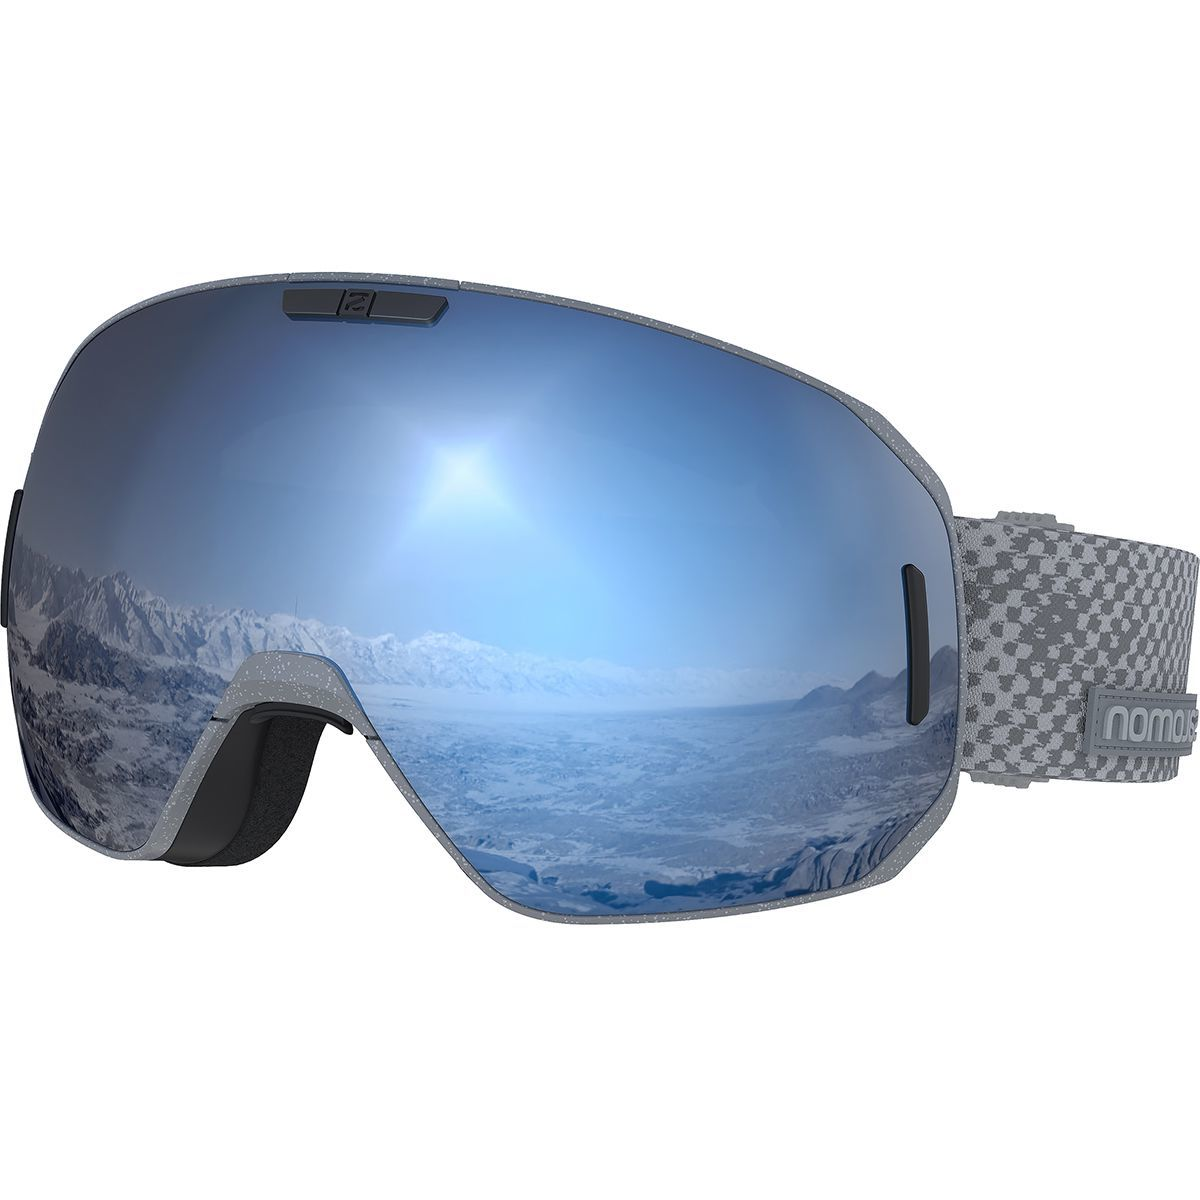 Salomon S/Max Sigma Goggles - Men's